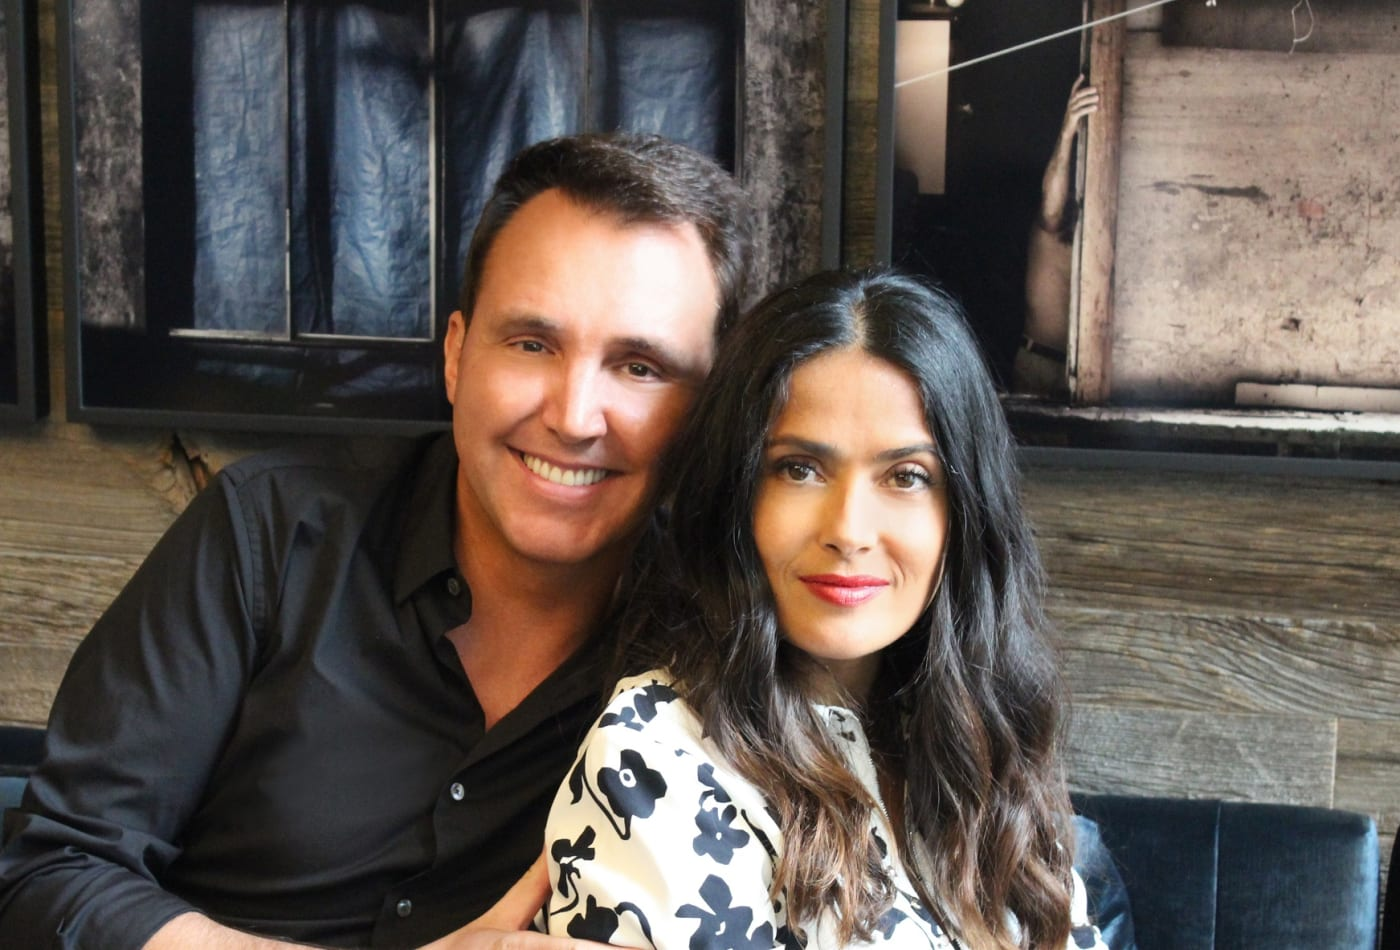 Juice Generation founder Eric Helms (L) with Cooler Cleanse co-founder and actress Salma Hayek